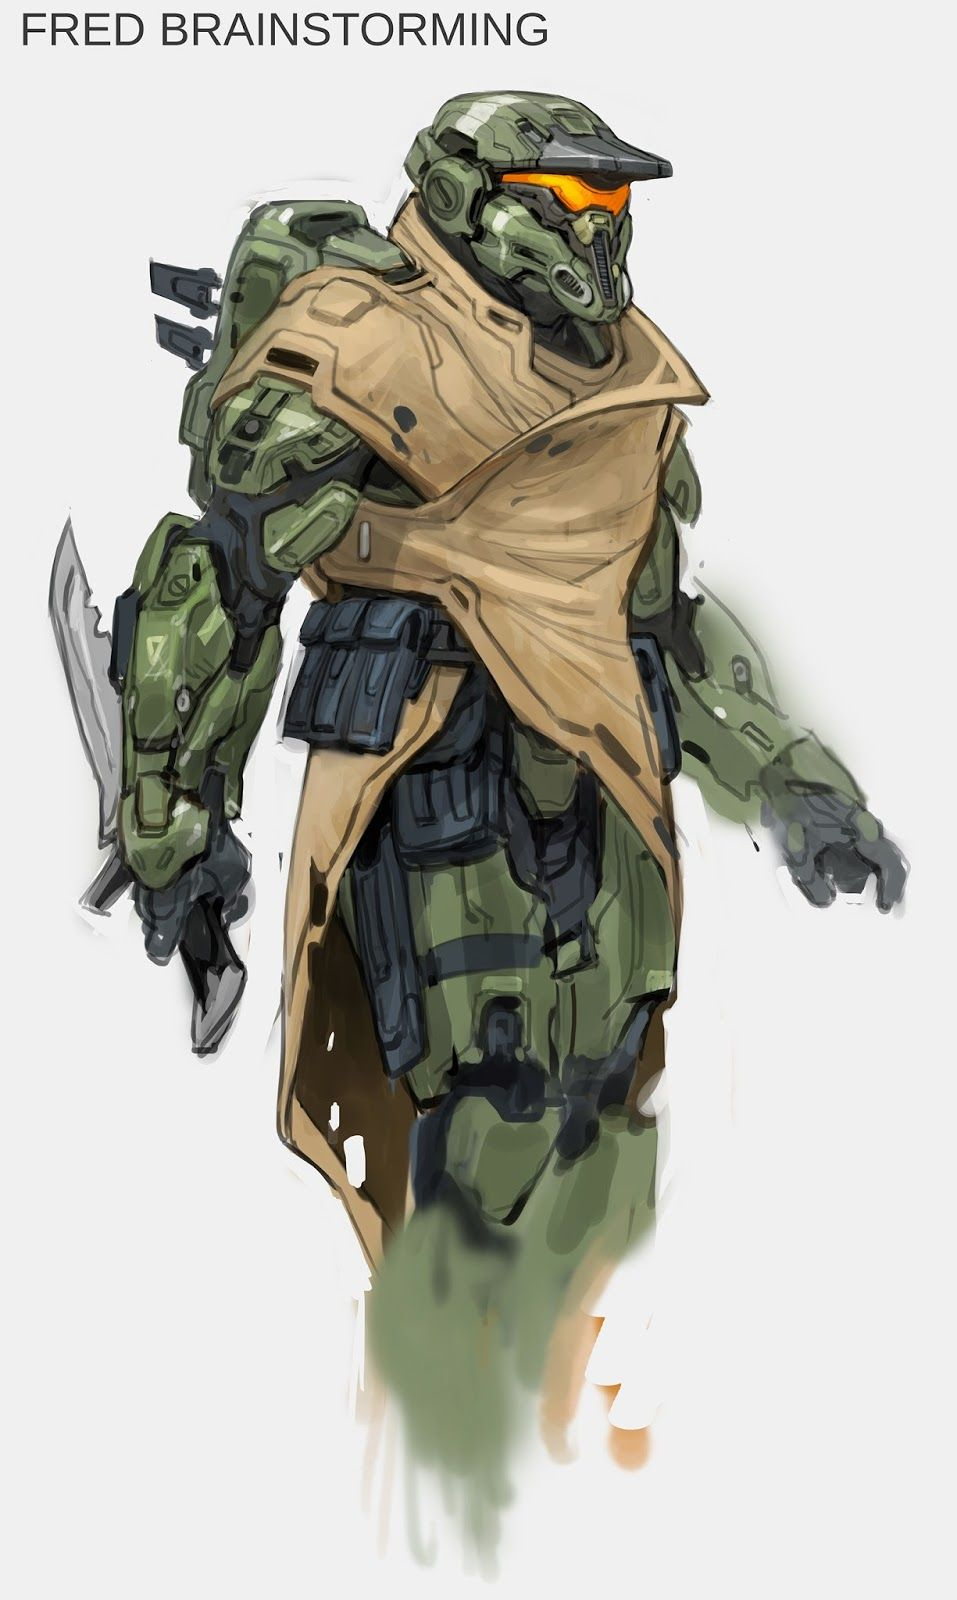 THE HUBBELL TELESCOPE : Halo 5 Concept Art : Spartan Fred